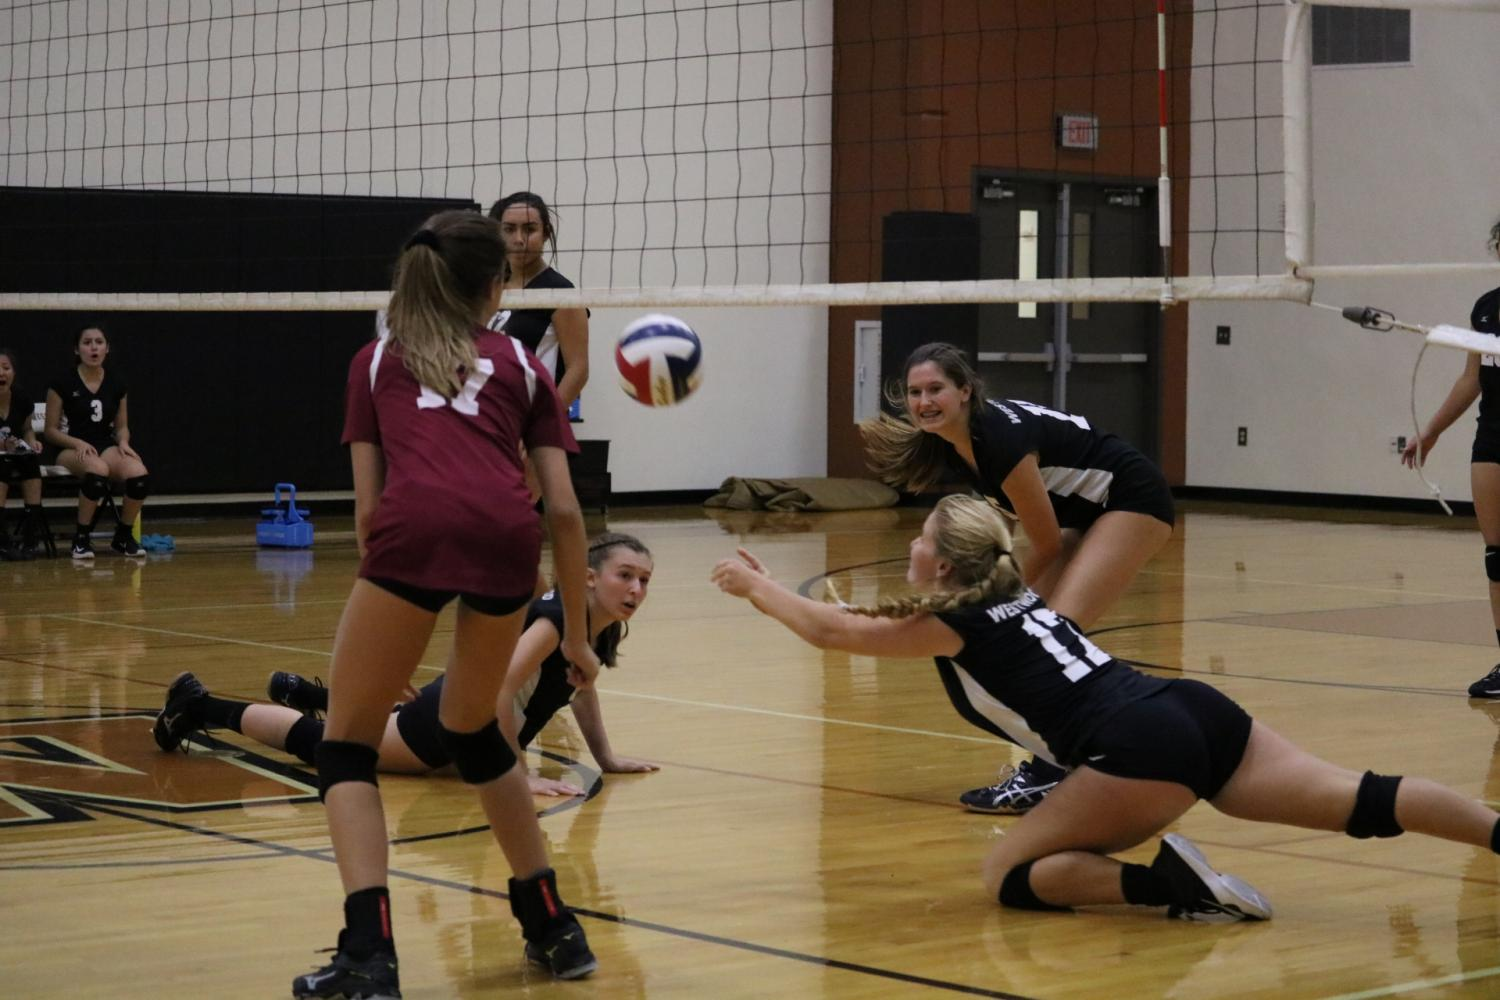 Freshmen+Lauren+Tyndall+and+Colleen+Wyrick+dig+for+the+ball.